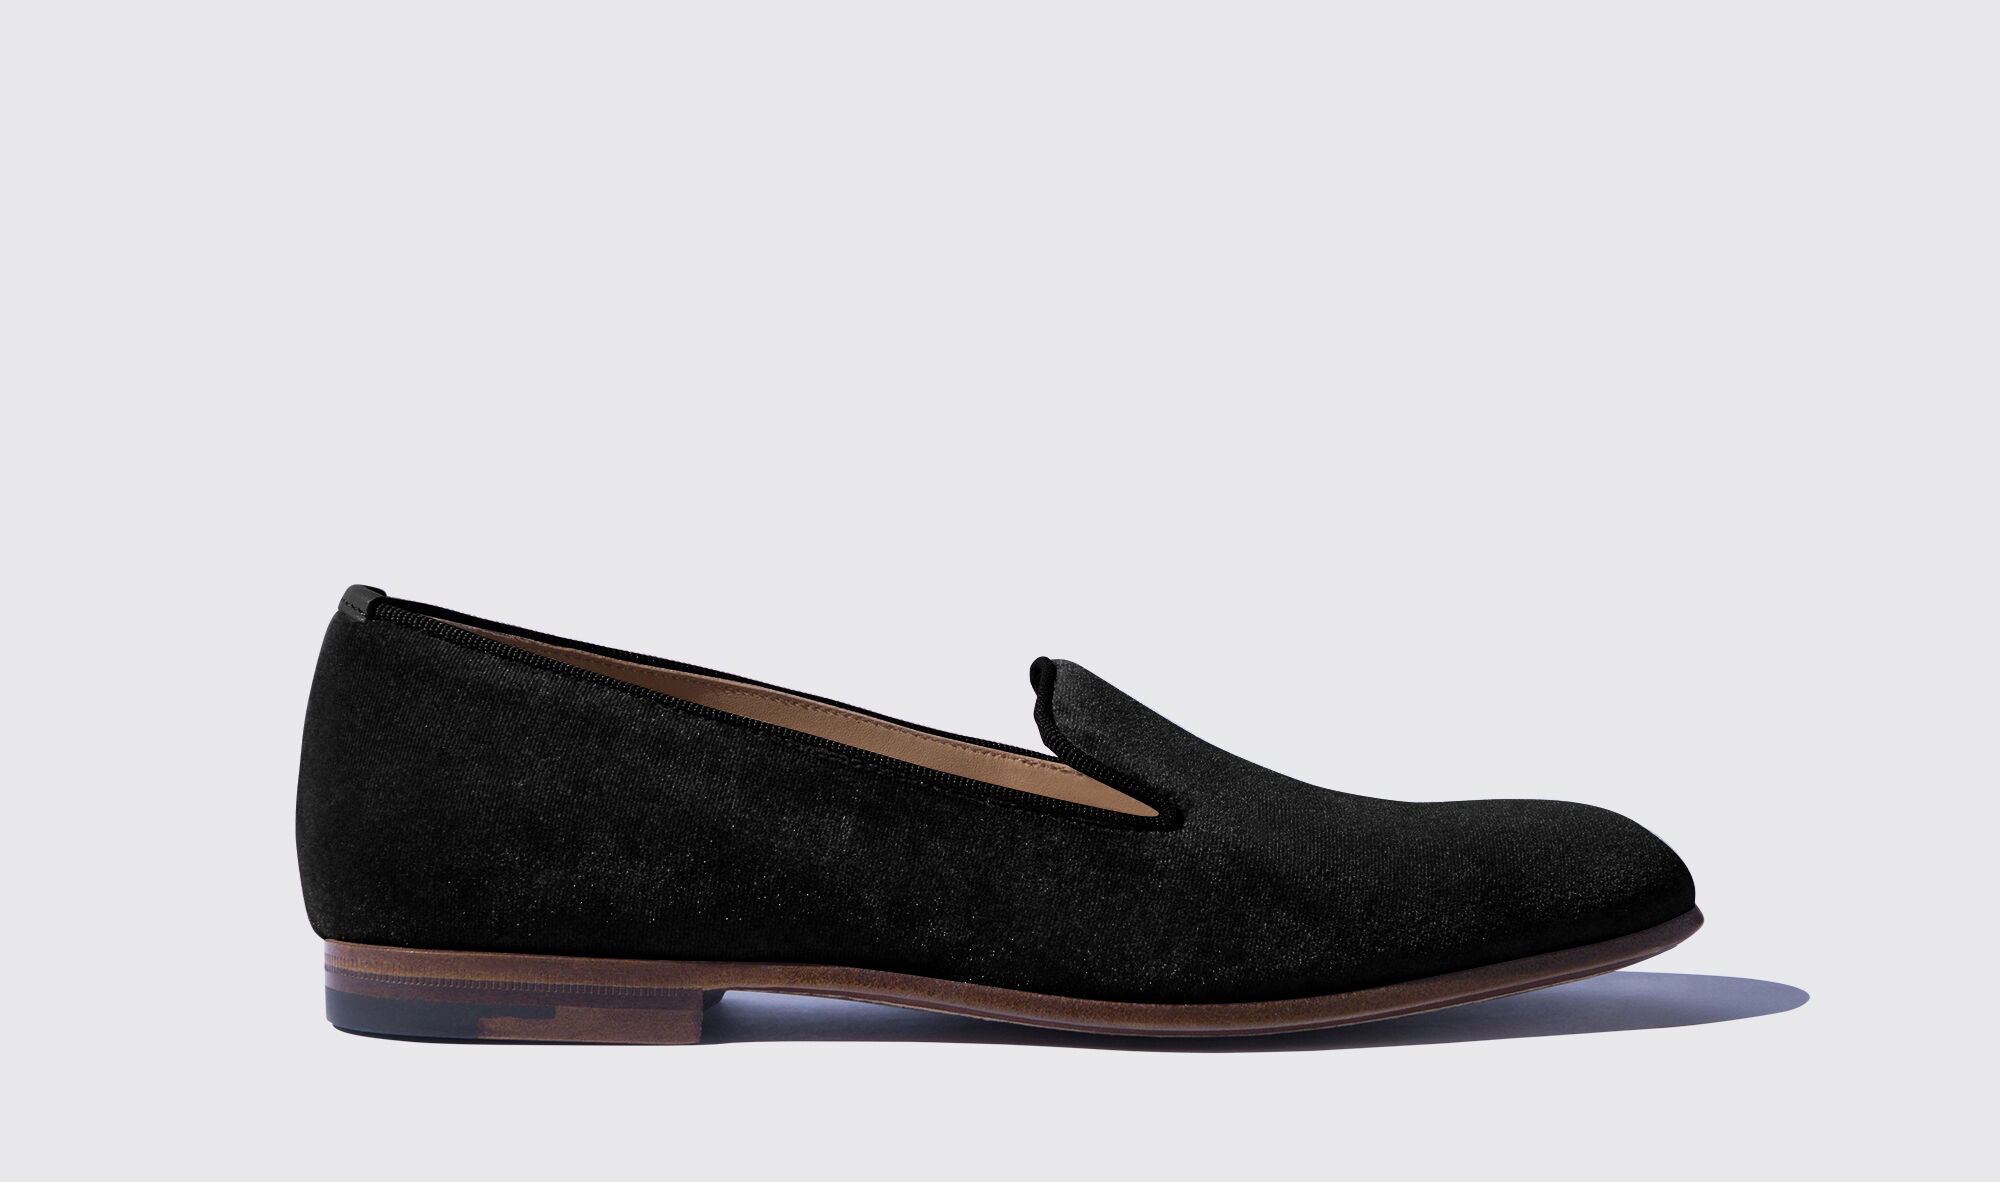 Scarosso Loafers Valentina Rosé Velluto Fashionable Cheap Price The Cheapest Cheap Online Explore Online 2018 S4hoT